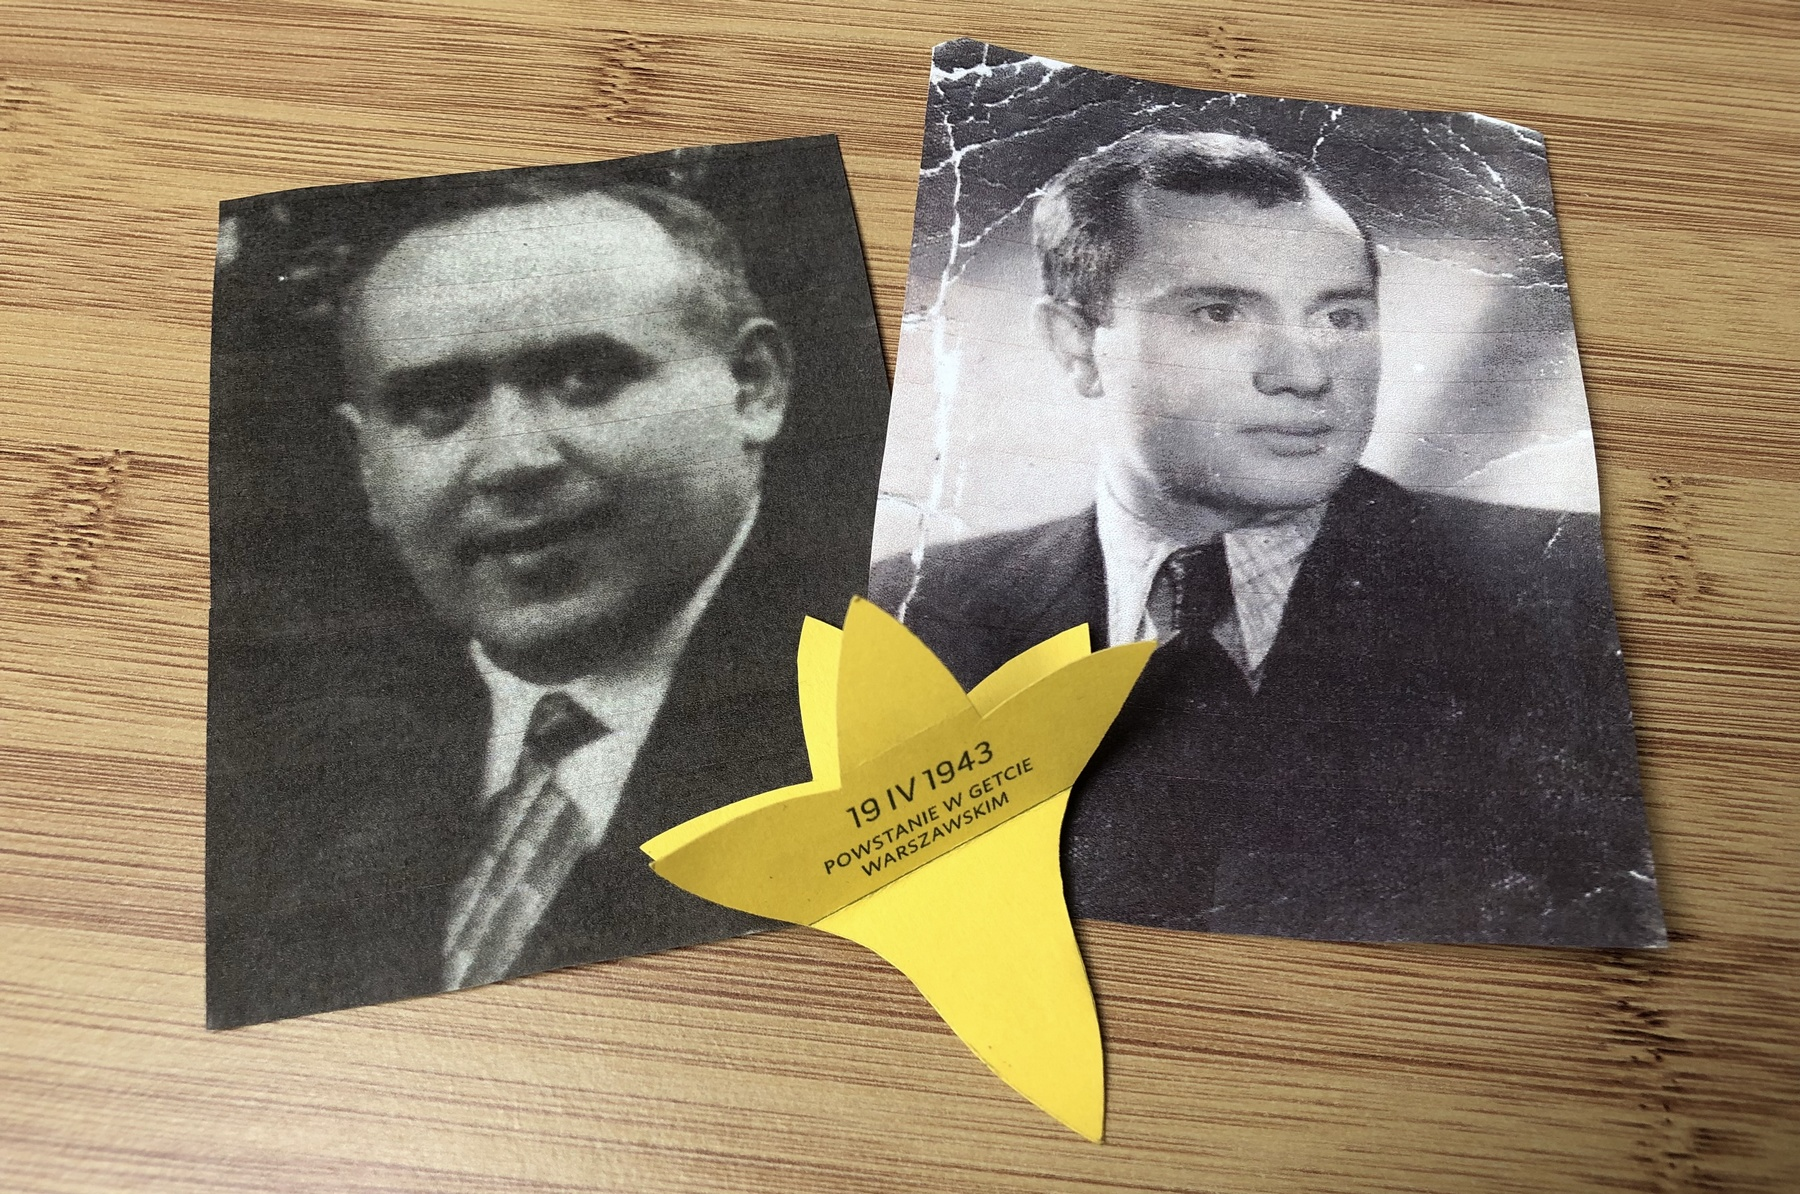 The 77th anniversary of the outbreak of the Warsaw Ghetto Uprising. Boruch Szpigel and Izaak Bernsztejn.